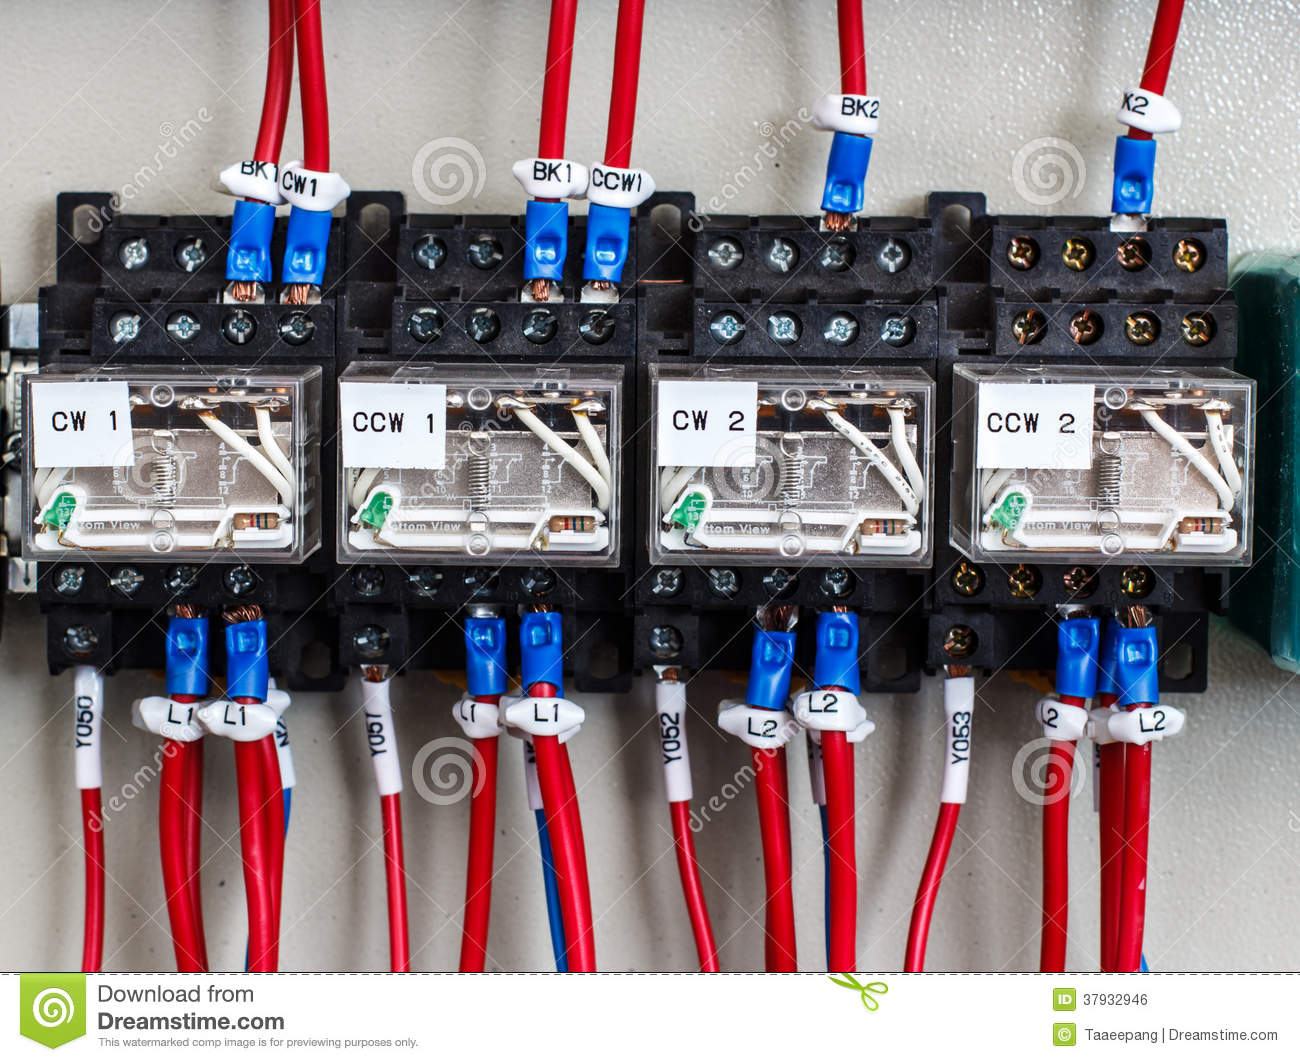 wiring control panel wires electrical circuits sheet industrial factory 37932946 wiring control panel with wires royalty free stock image control panel wiring at bakdesigns.co